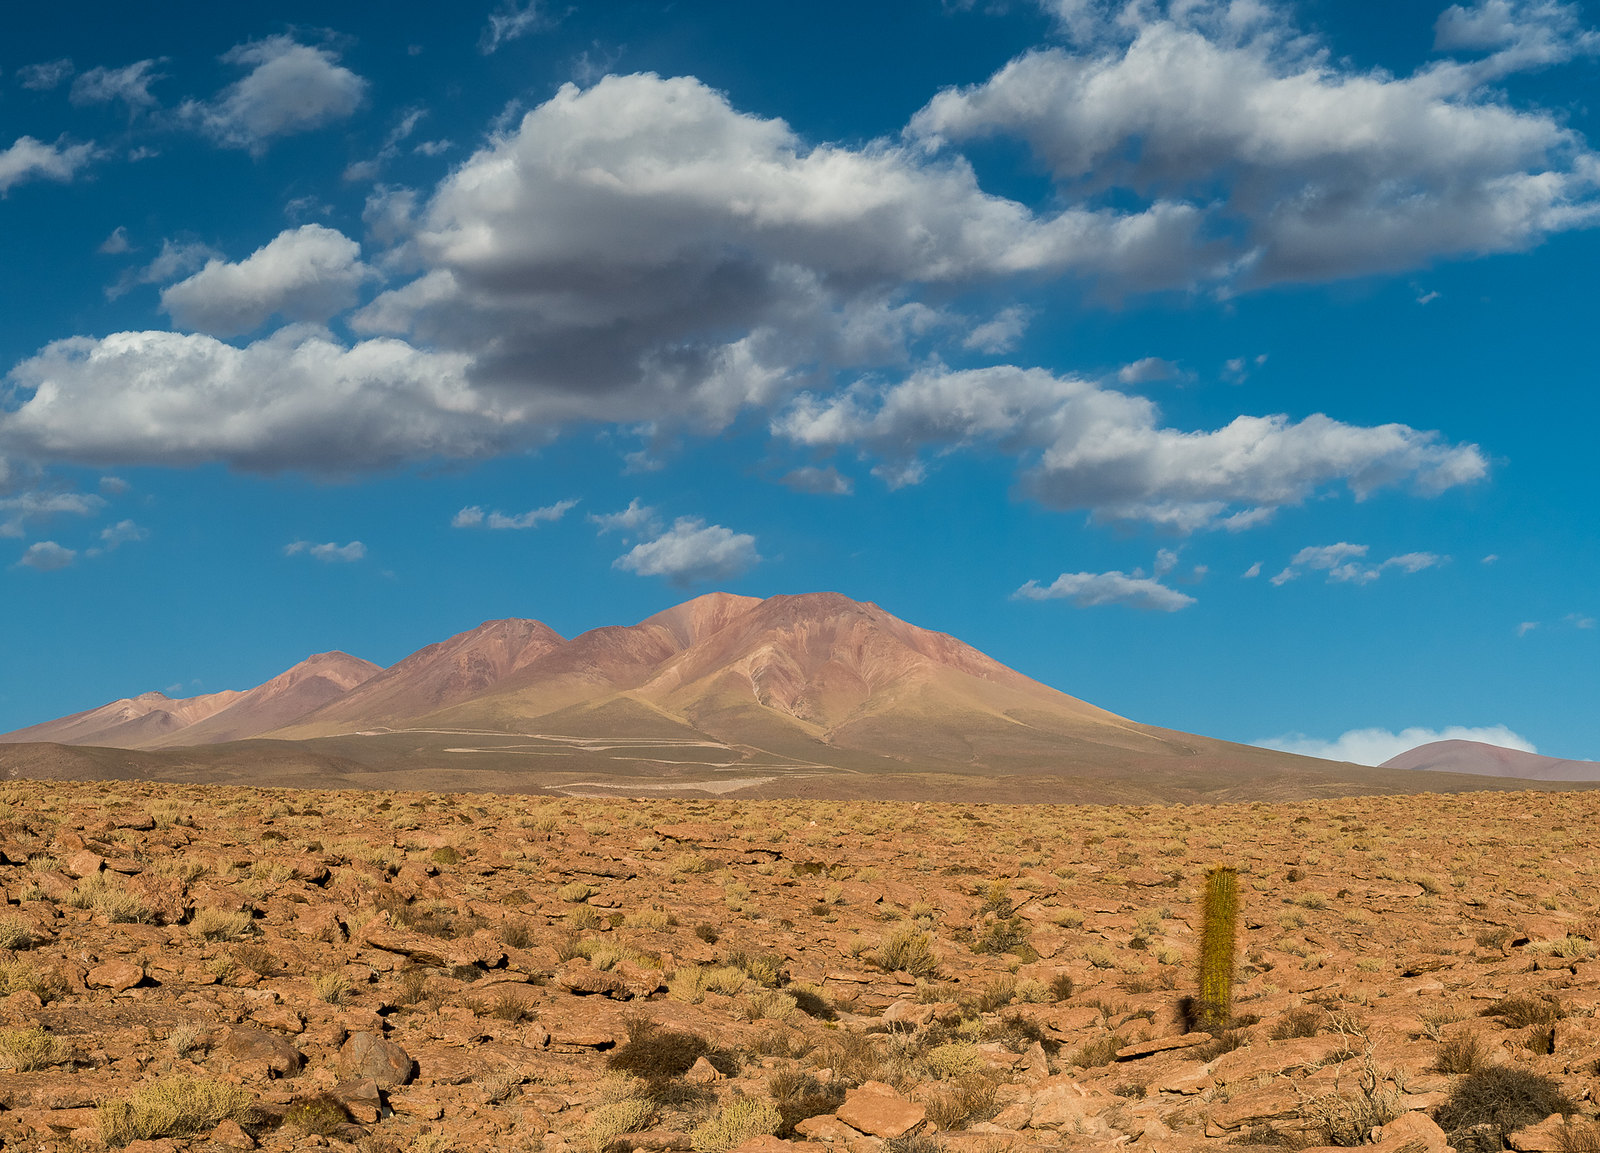 Valhalla's development of 561MW PV and 300MW of energy storage in Chile's Atacama should reach commercial operation in 2025 (Credit: Flickr / Alessandro Caproni)